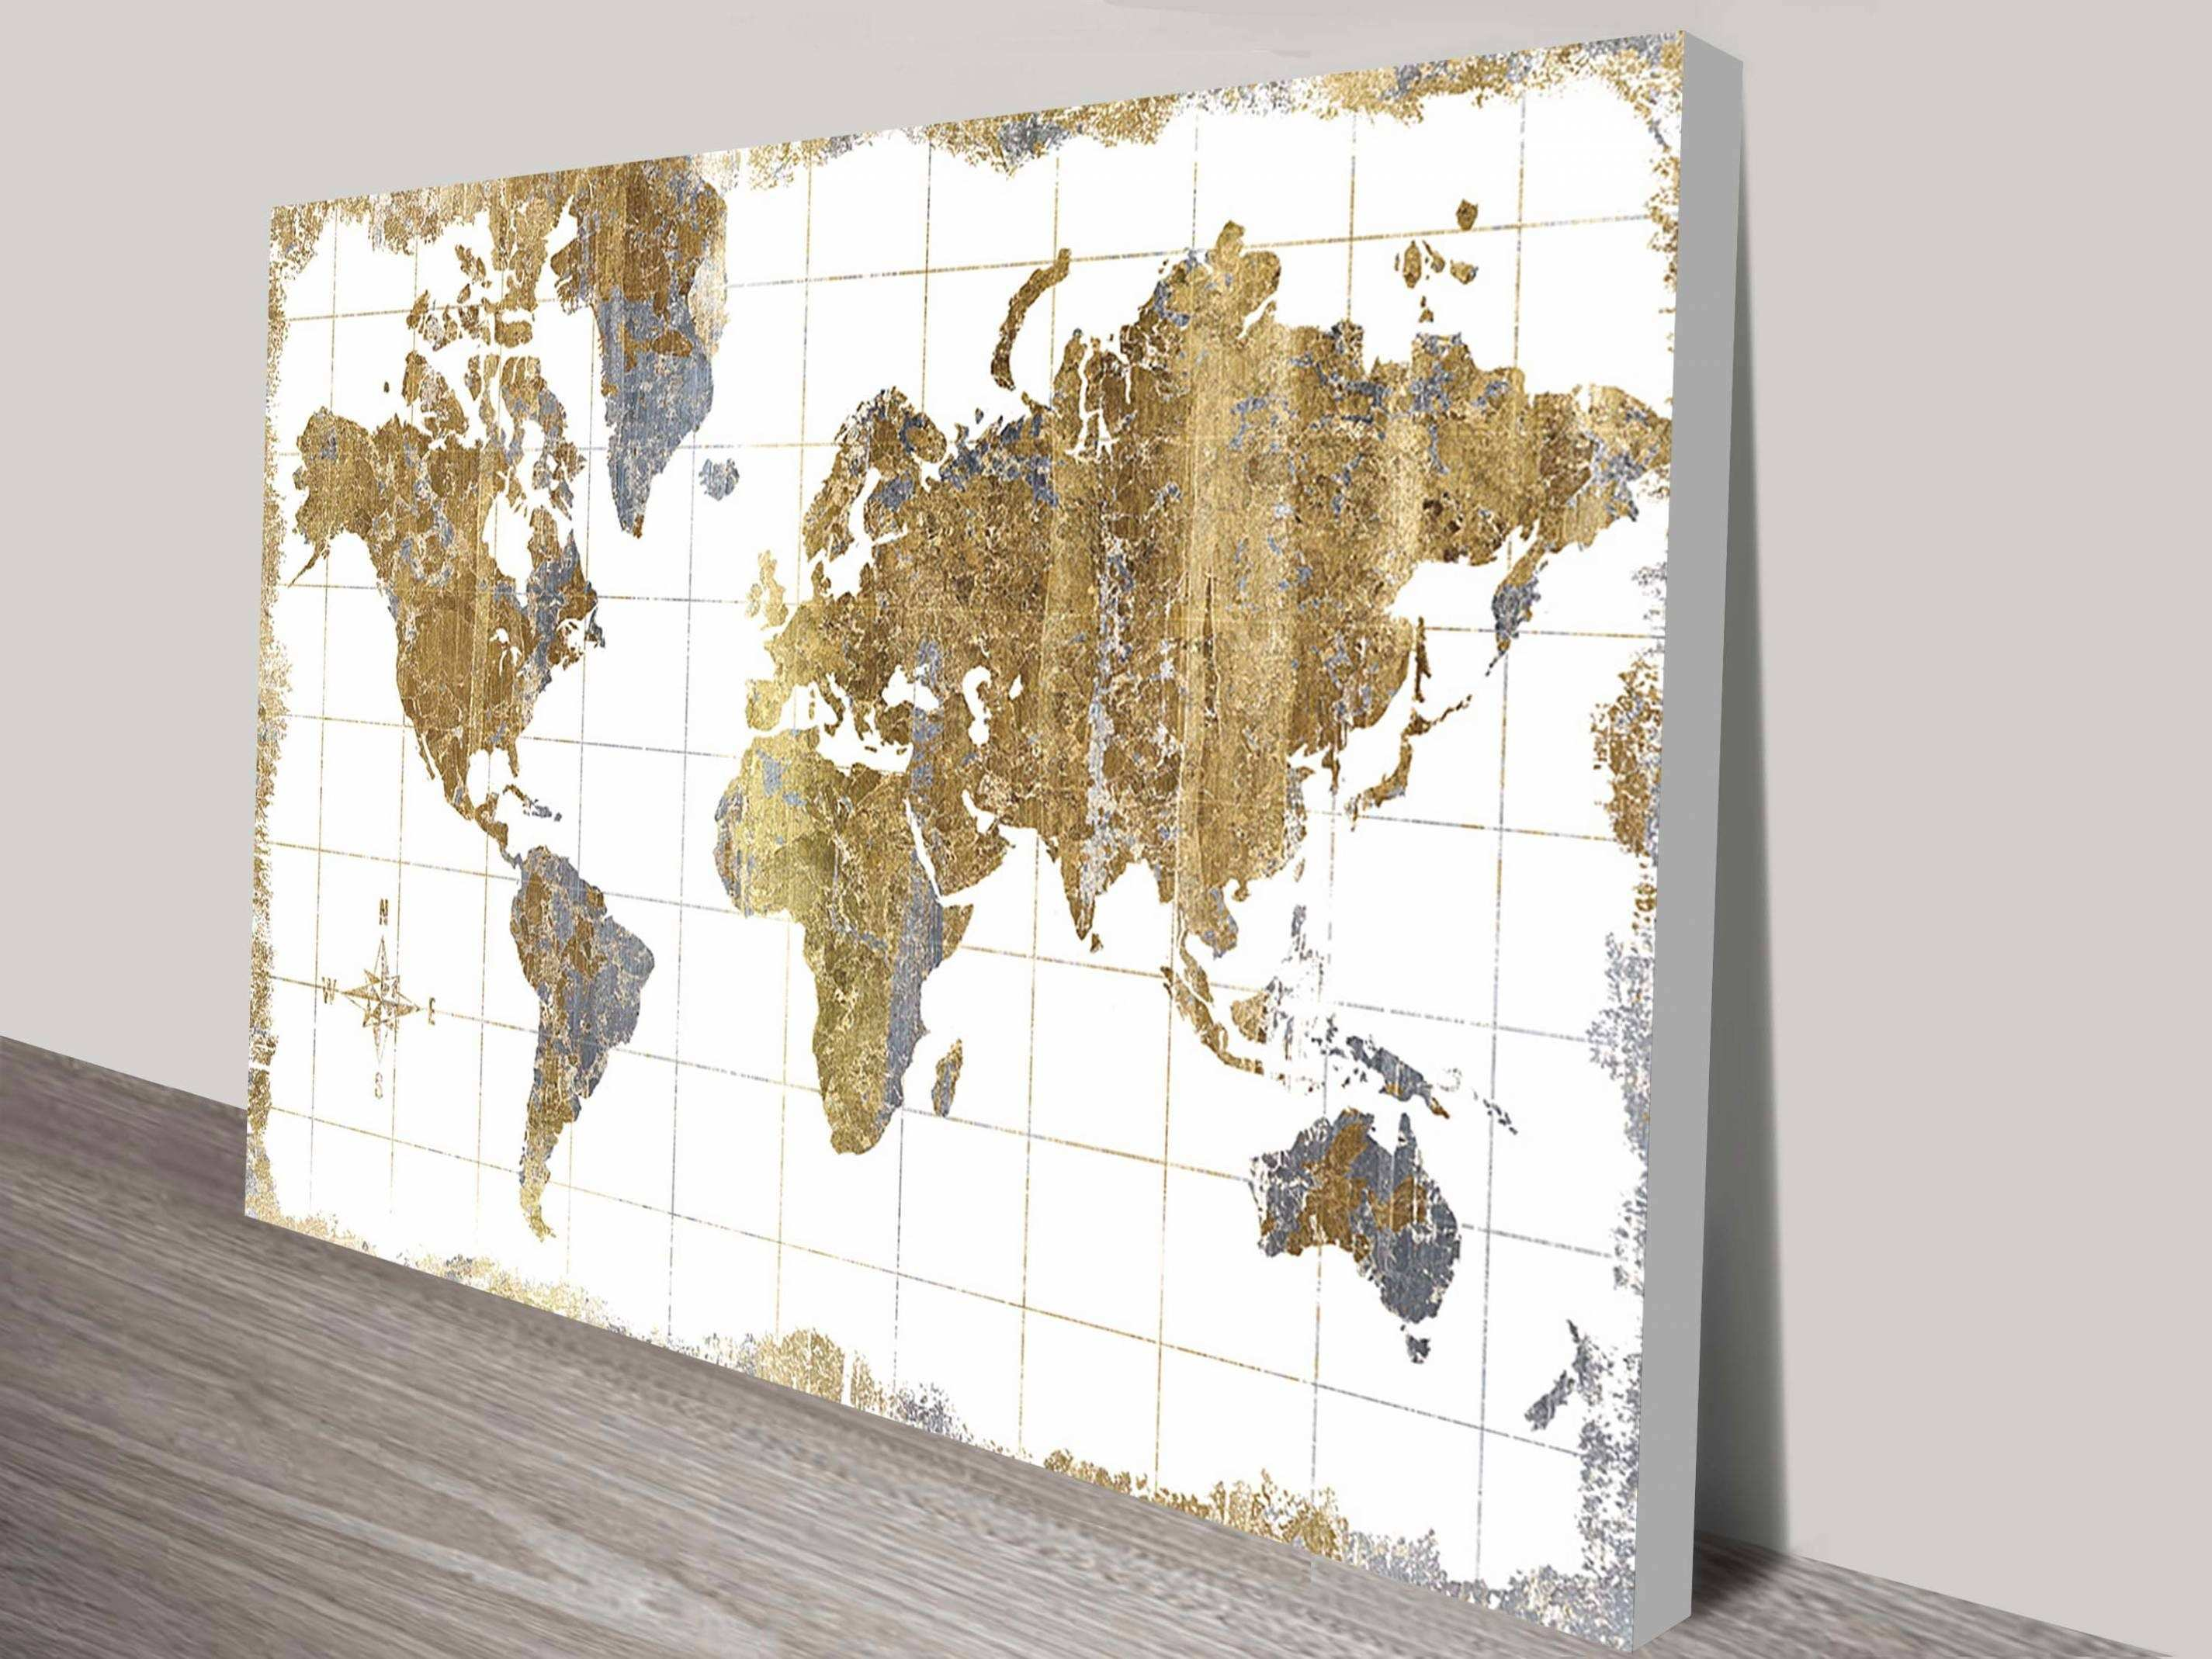 Gallery of Painting The World Map Viewing 7 of 20 s